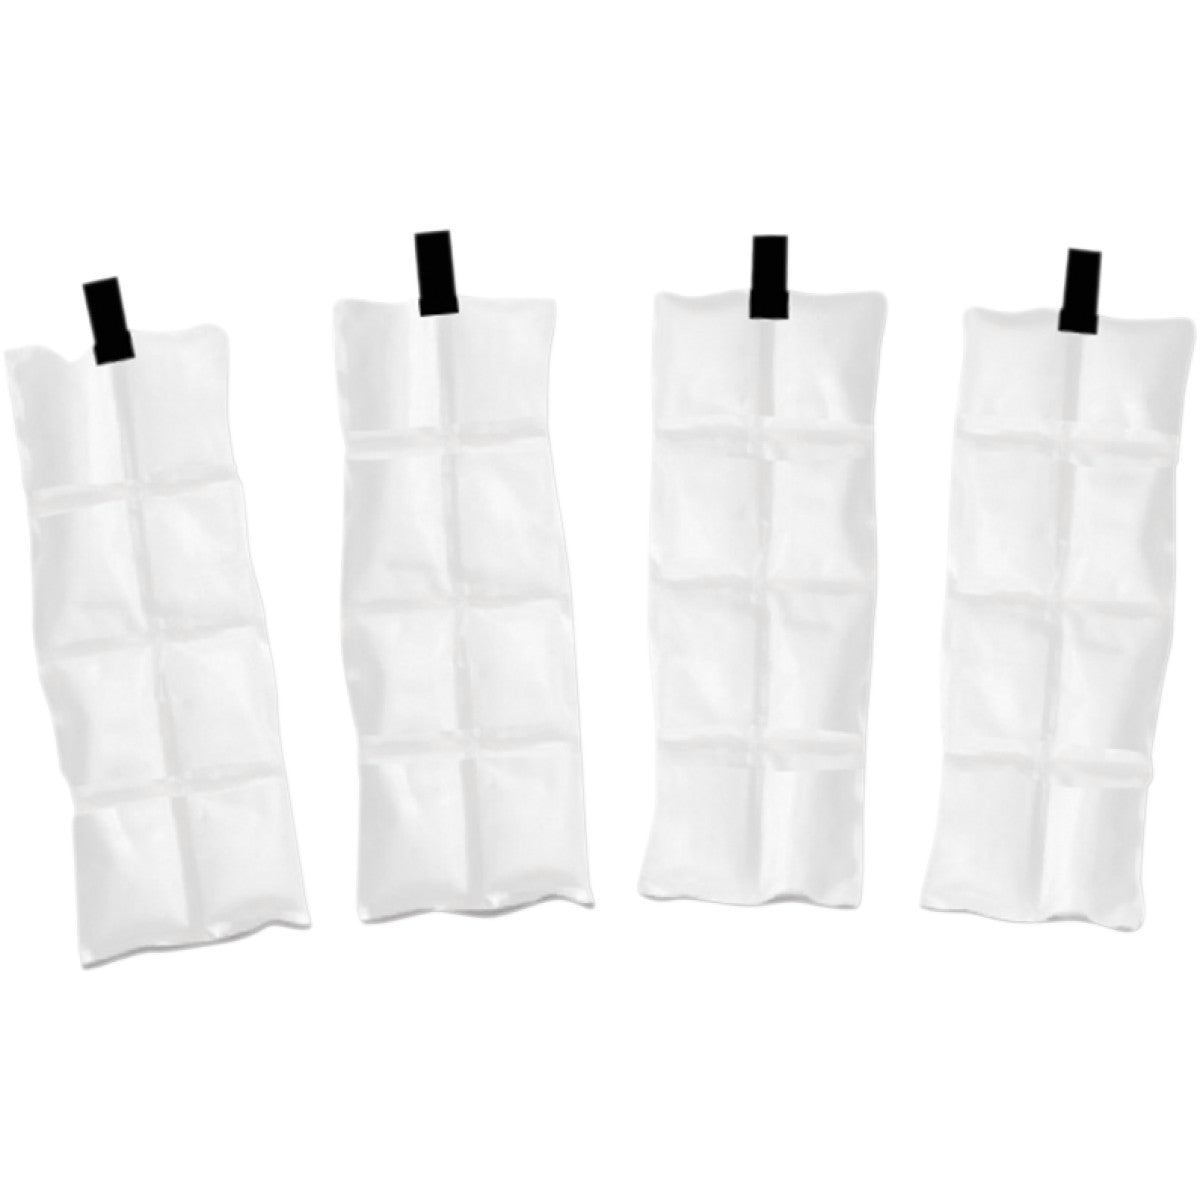 Hyper Kewl Coolpax™ Cooling Inserts For Techkewl™ Cooling Vests With Hook And Loop Stabilizers